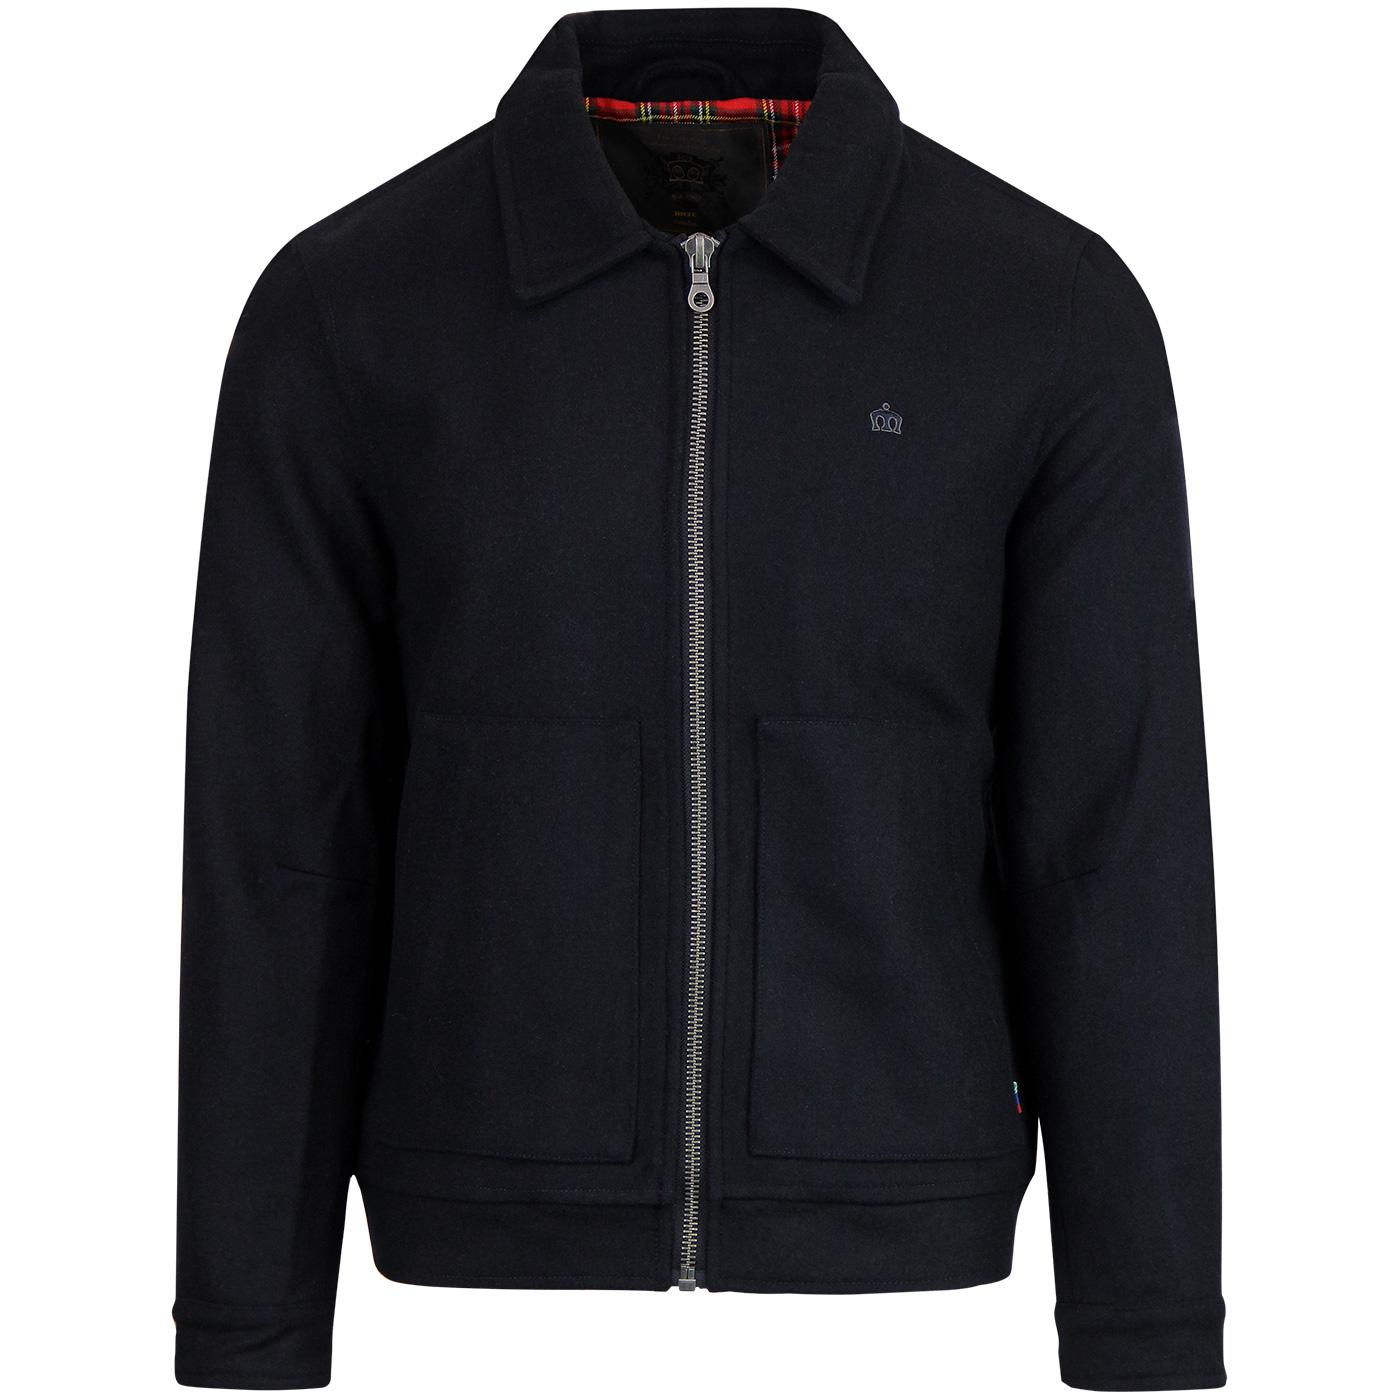 Ladbroke MERC Retro Mod Wool Jacket Dark Navy